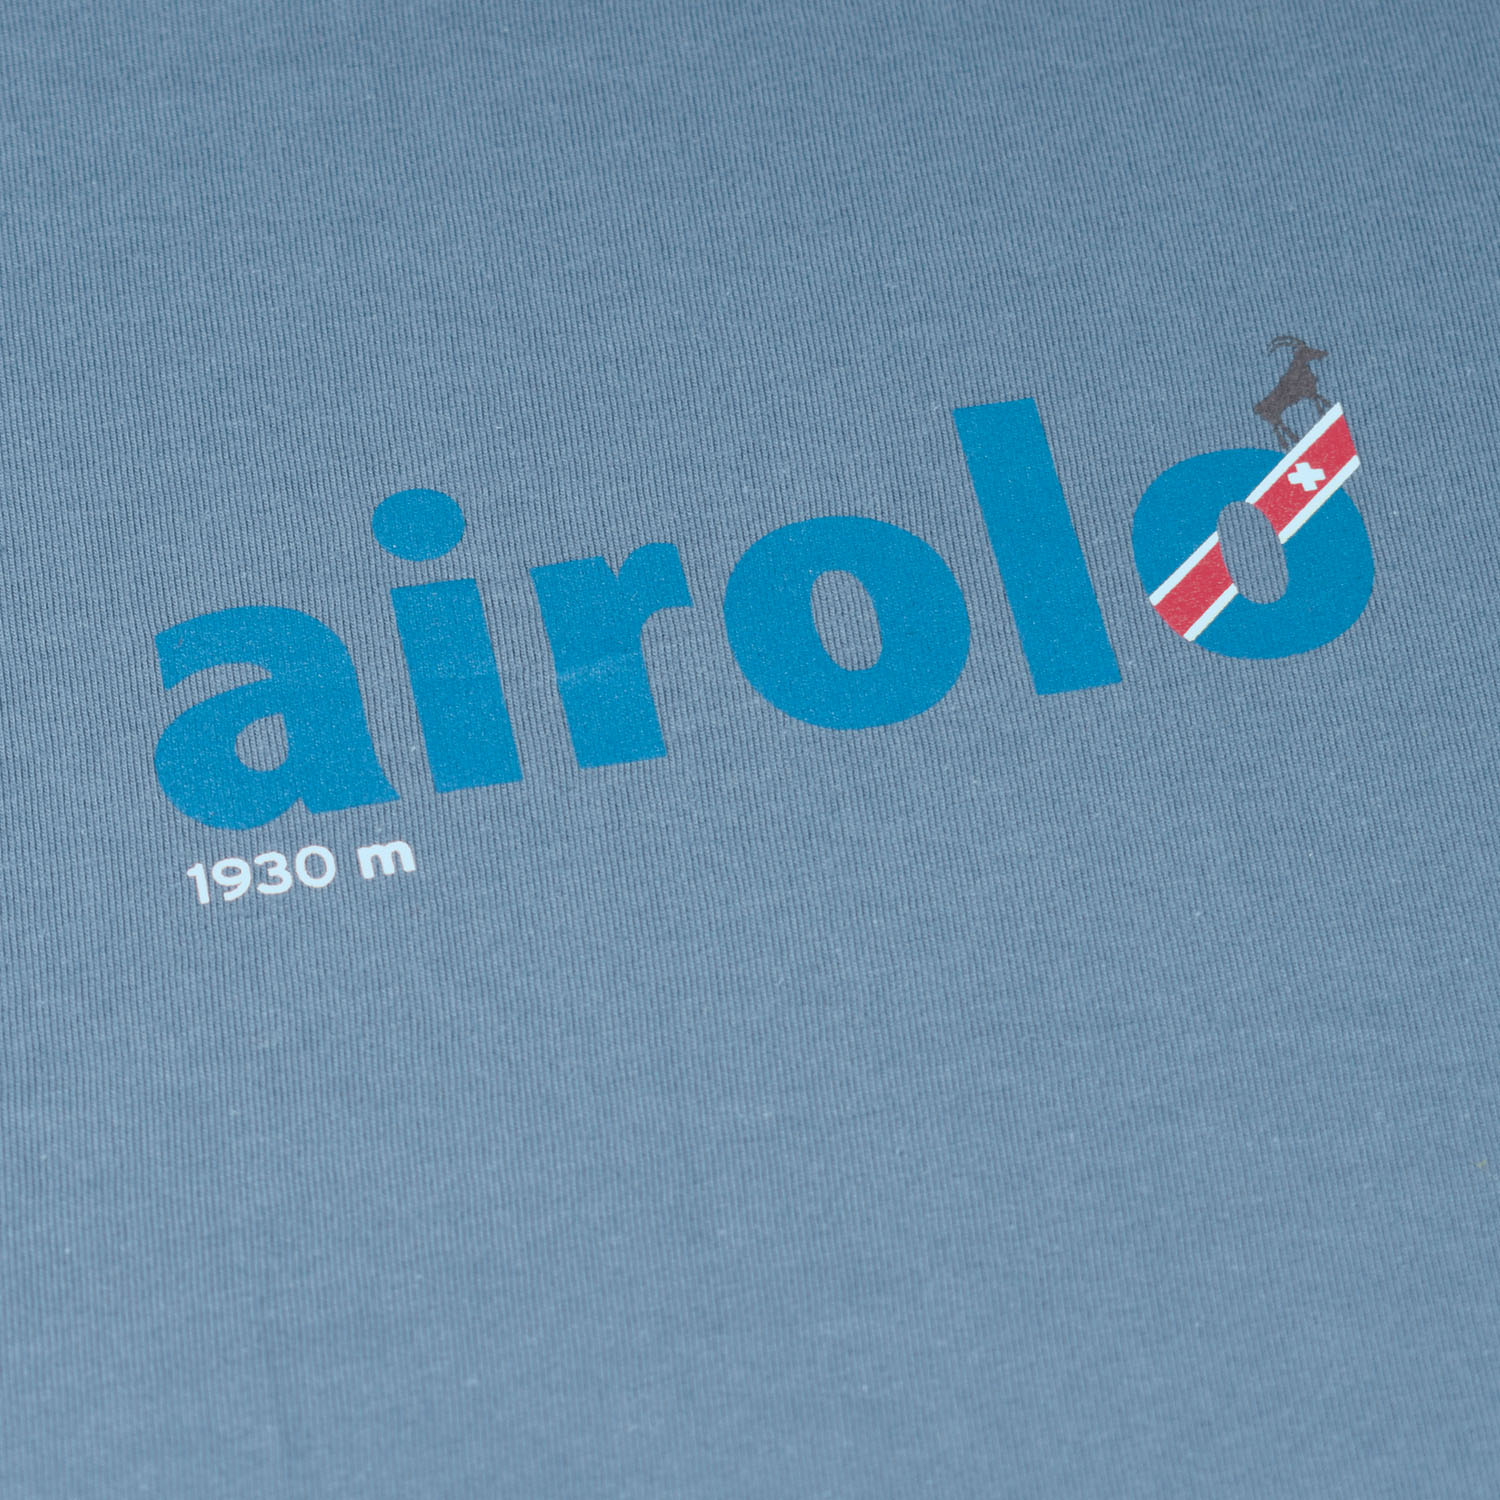 T-lab Airolo t-shirt blue closeup